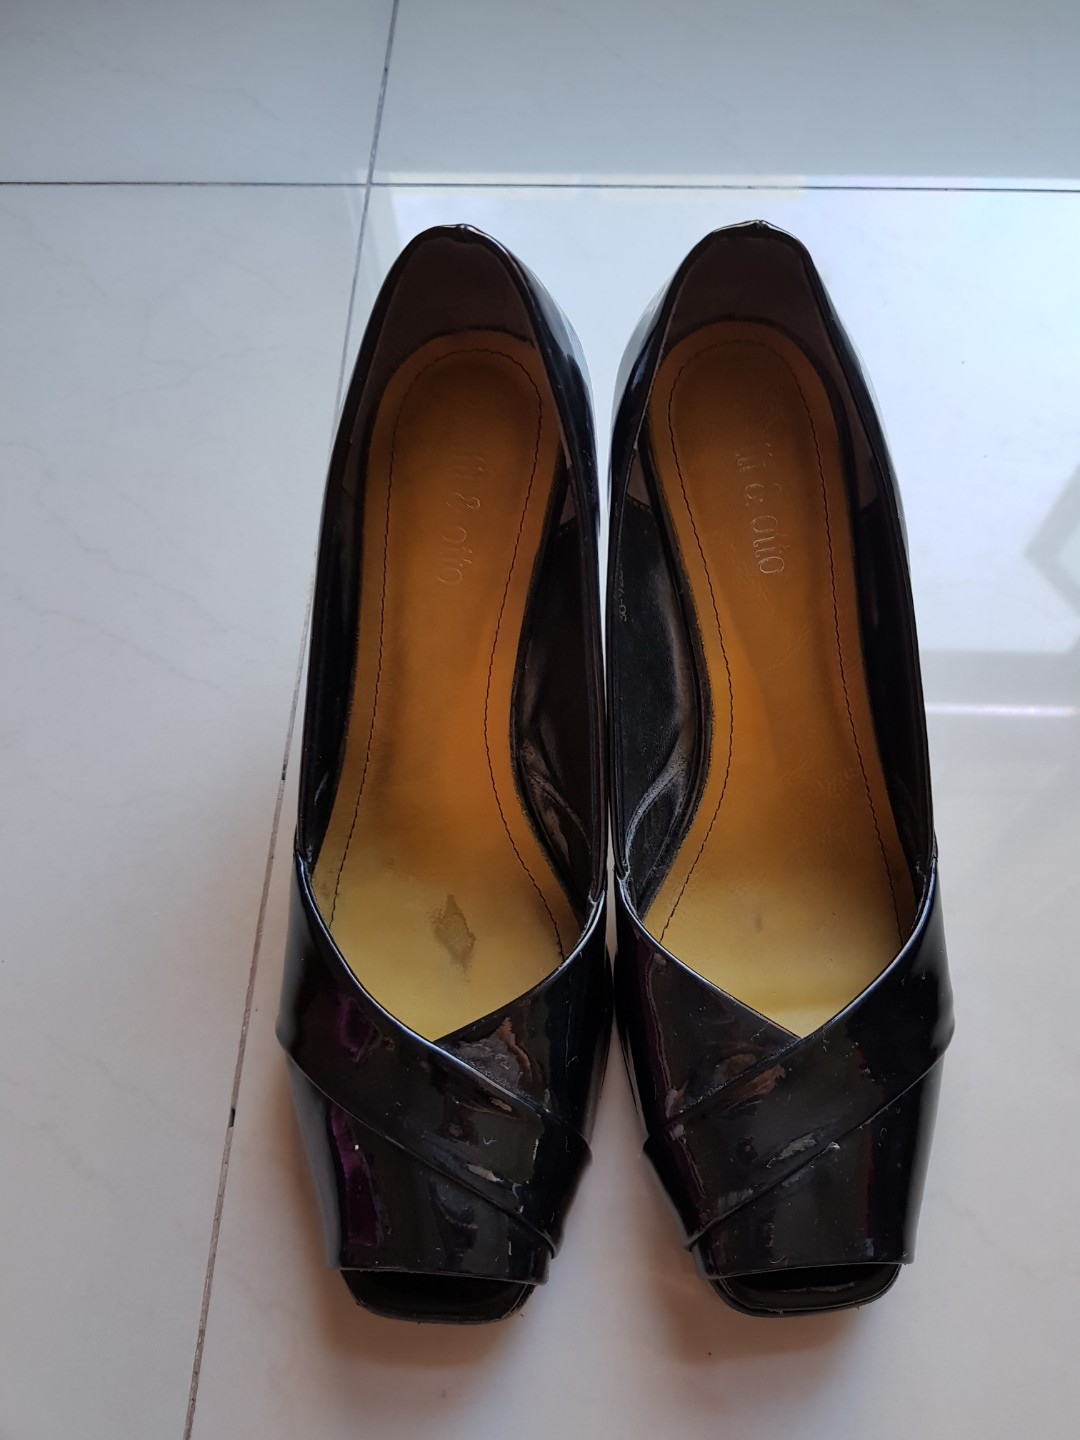 d7ccb5d37 Itti & otto heels #black #pre-loved, Luxury, Shoes on Carousell